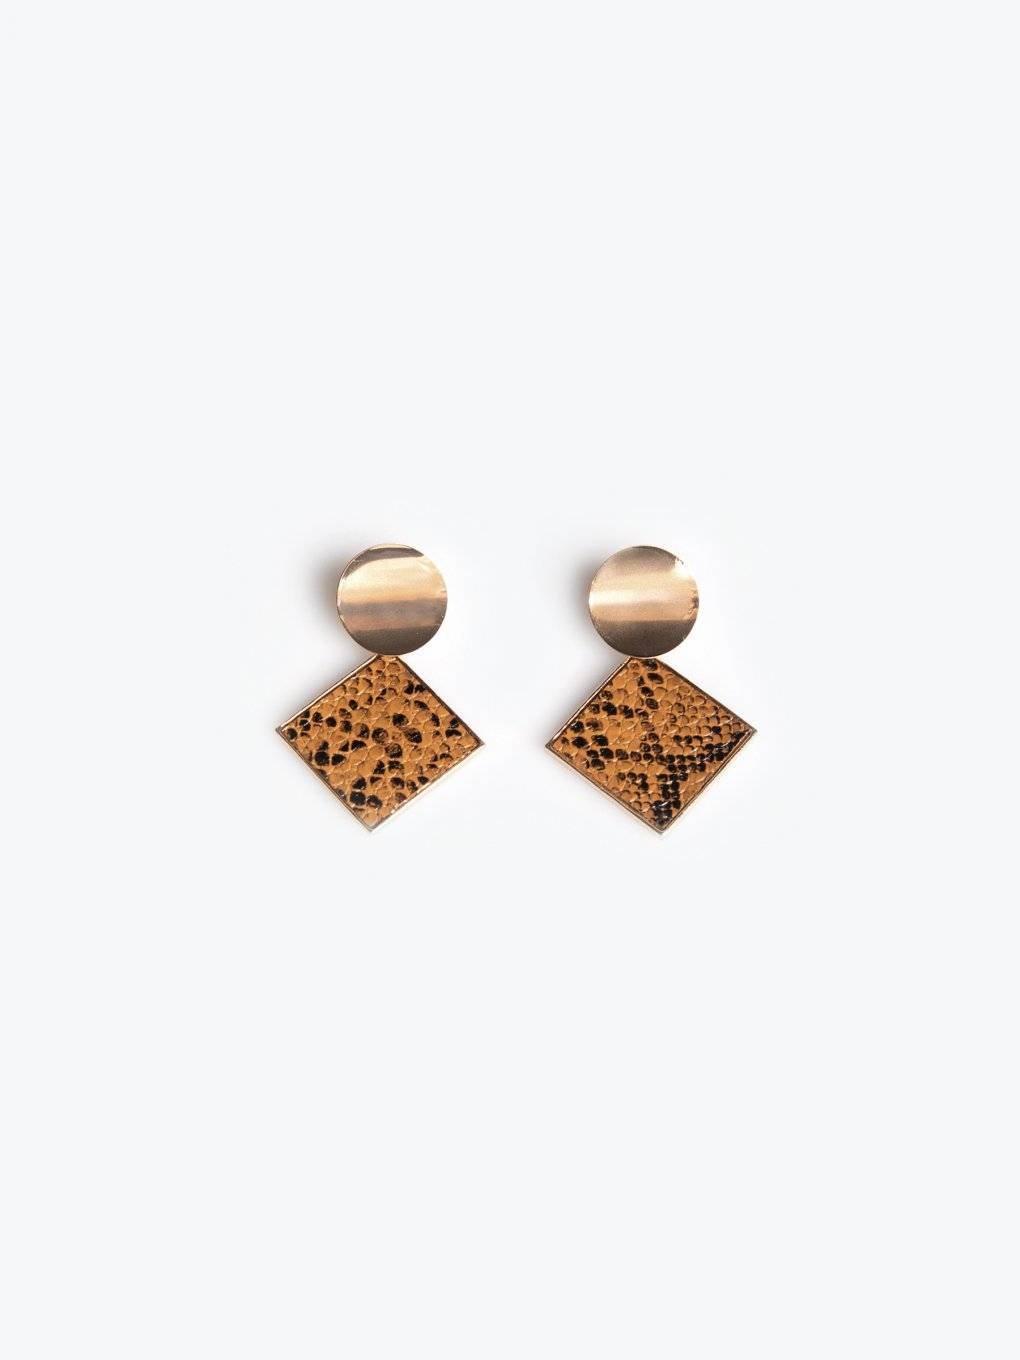 Drop earrings with snake skin texture